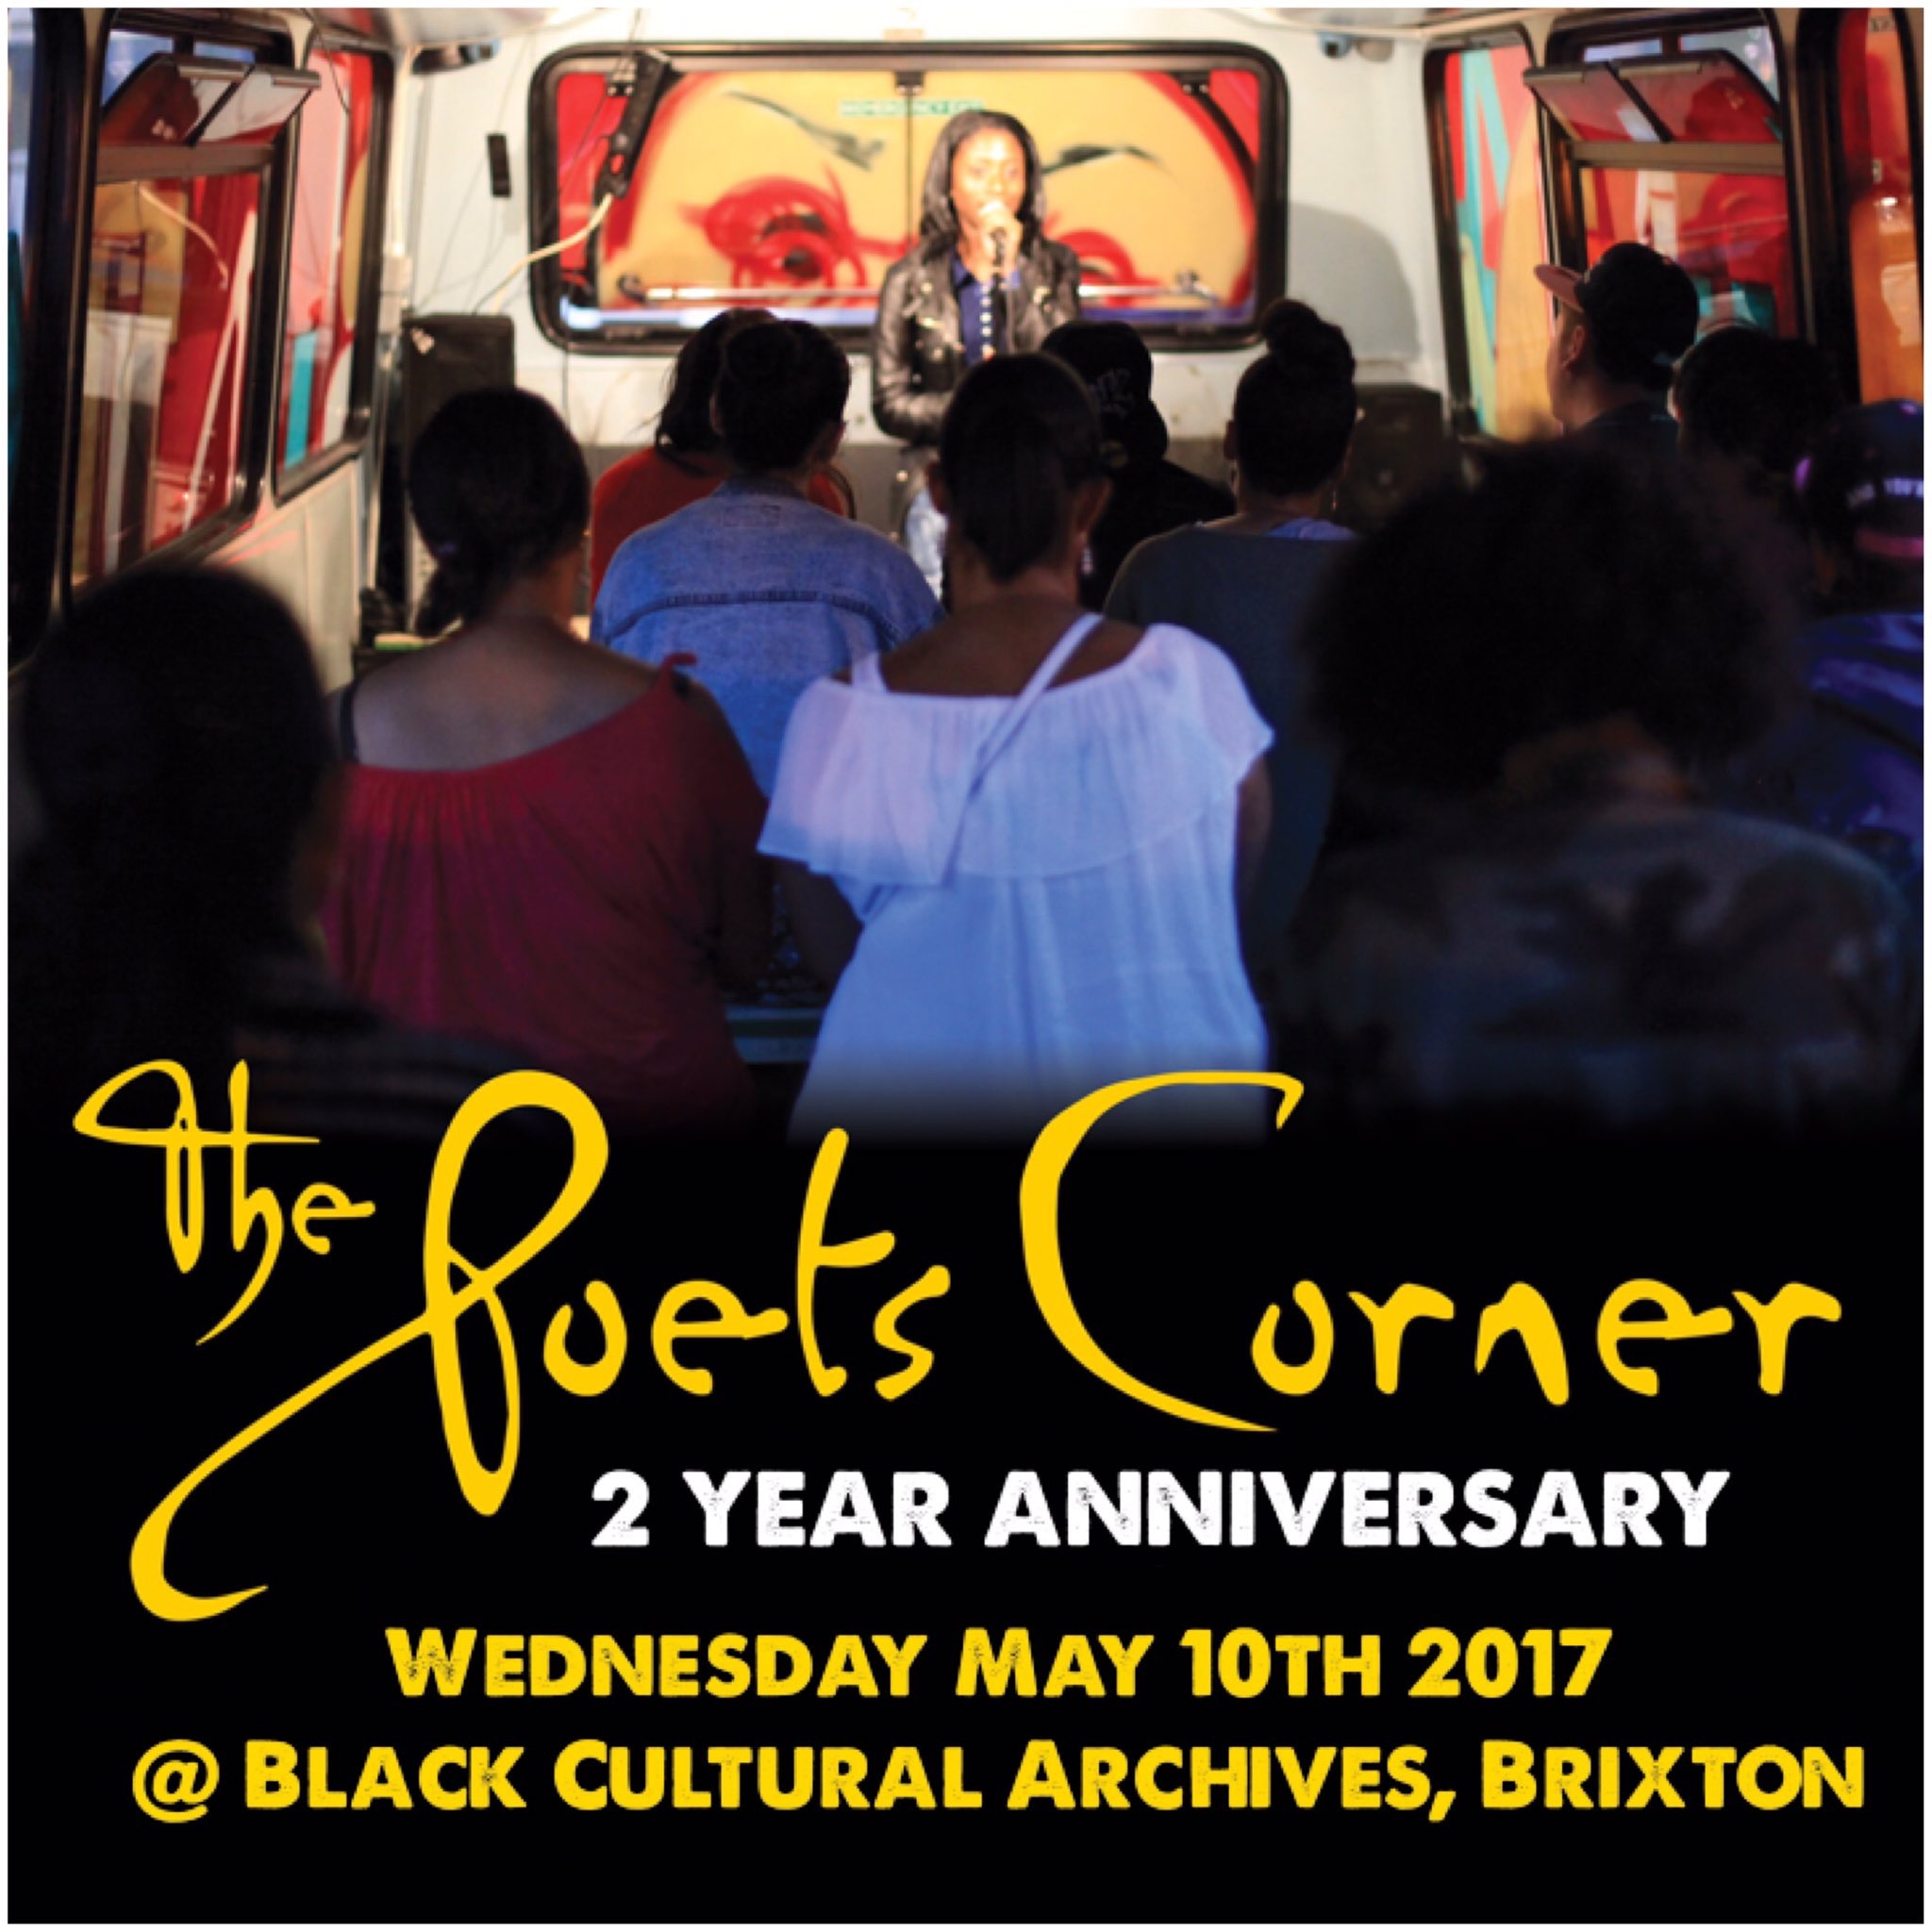 2nd Saturday Poets 2: 'The Poets Corner' 2nd Year Anniversary